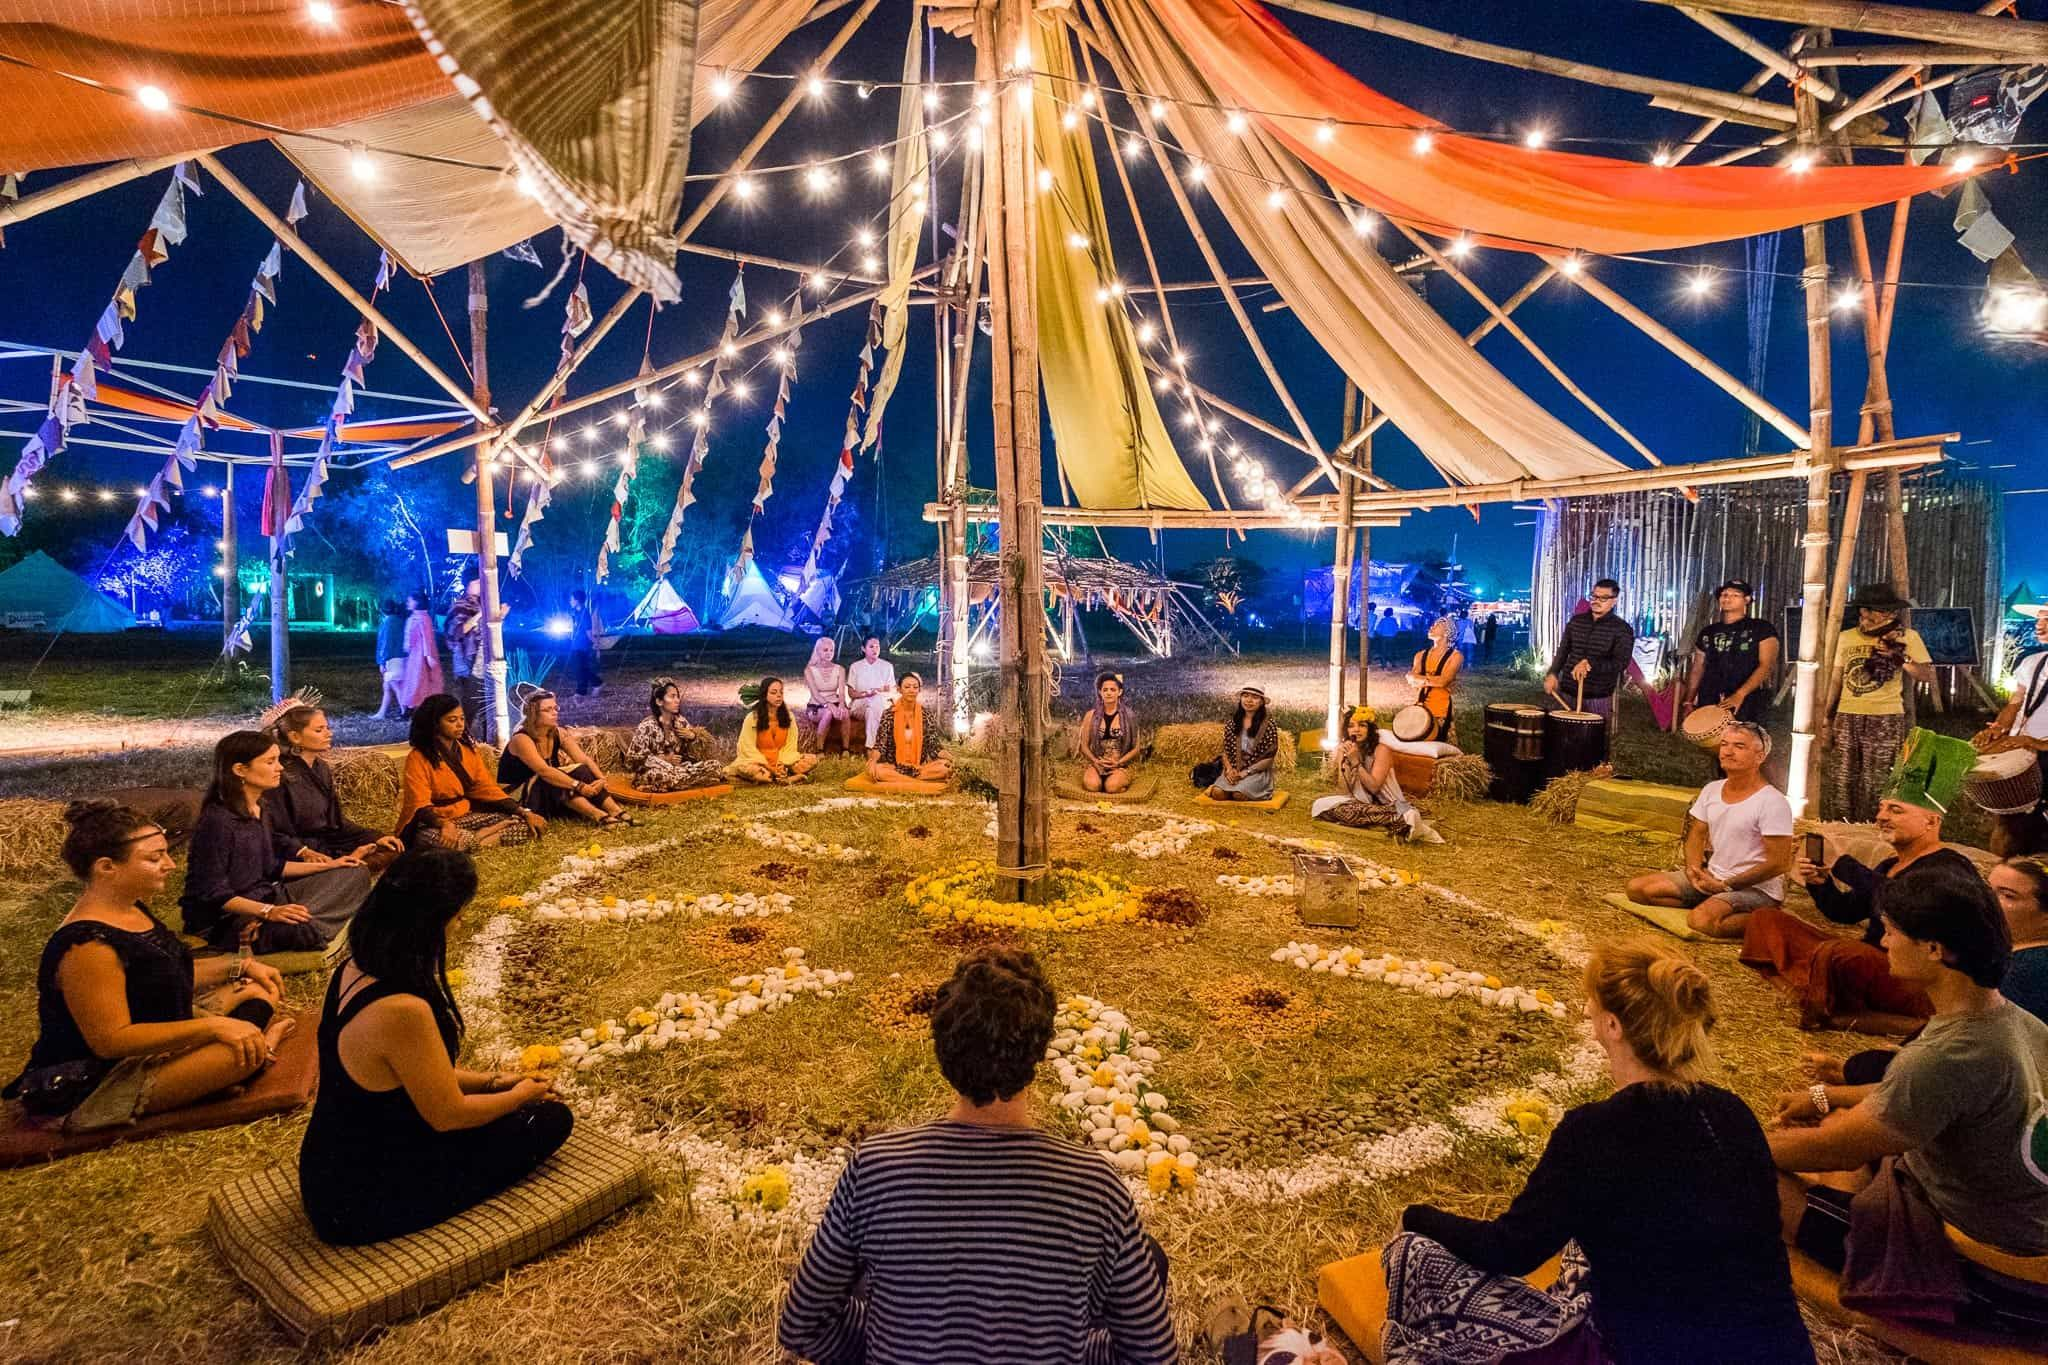 The Wonderfruit Music Festival - What to Expect for Winter in Thailand